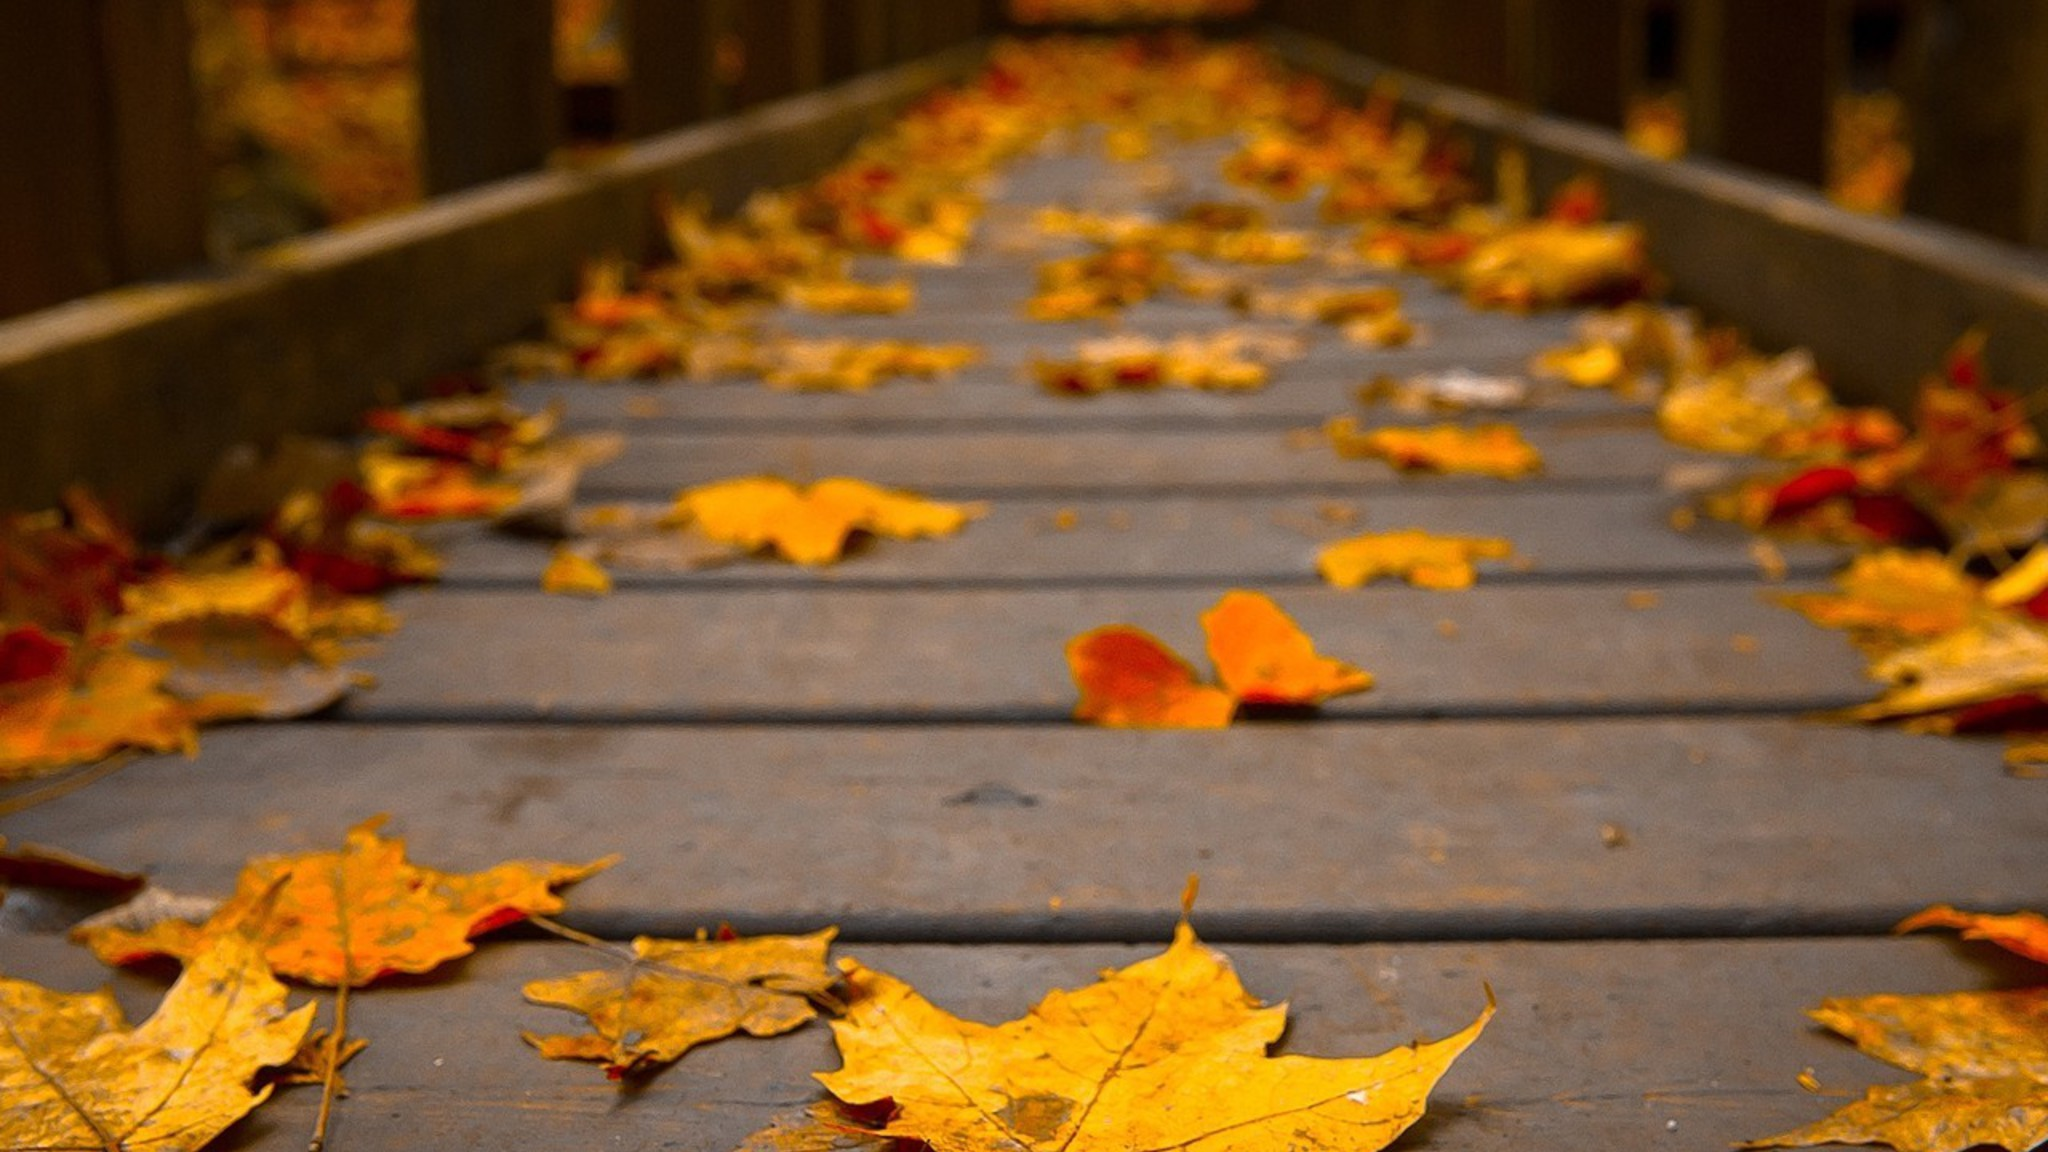 Falling Leaves Wallpaper For Iphone Woods Wooden Bridge Colors Peaceful View Autumn Wallpaper